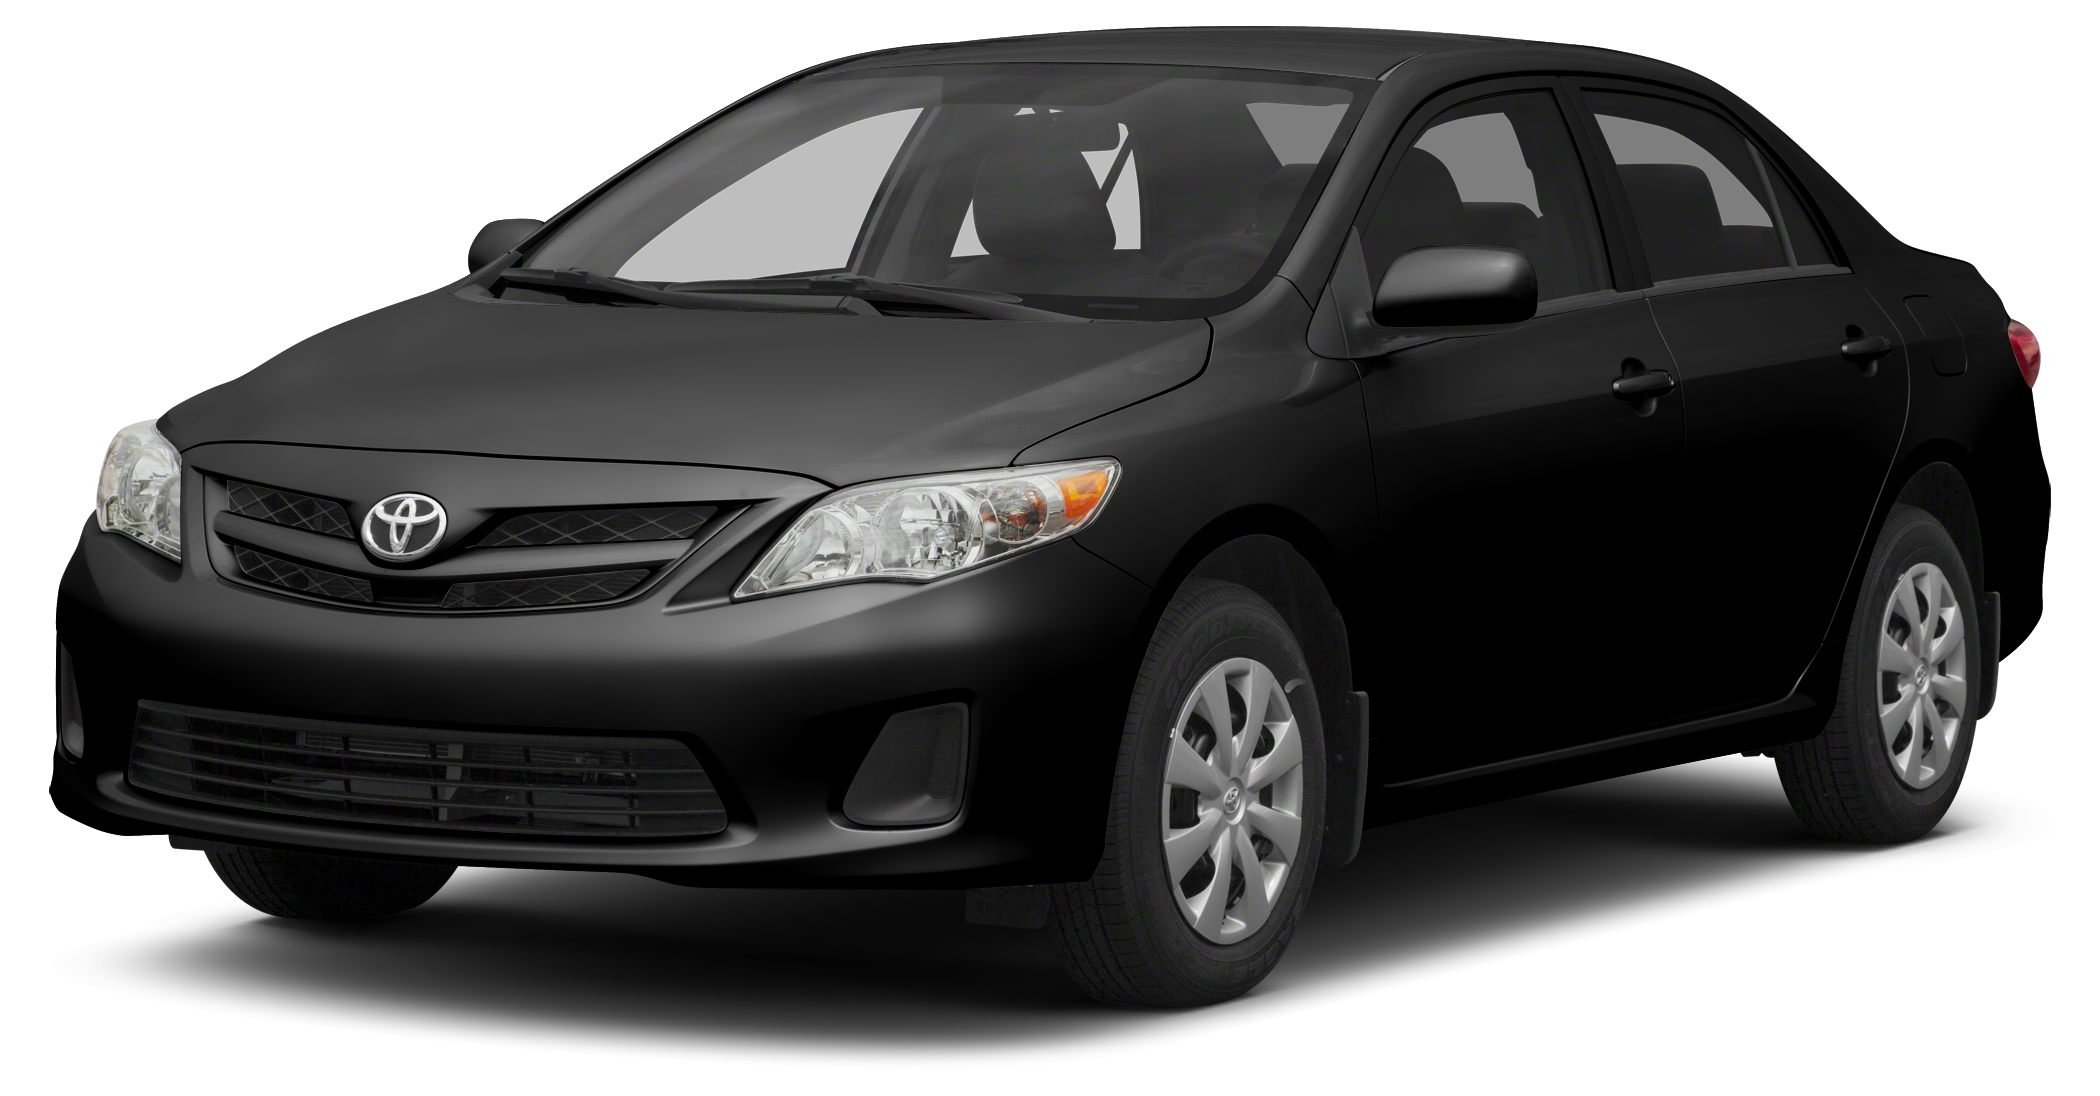 2012 Toyota Corolla LE EPA 34 MPG Hwy26 MPG City CARFAX 1-Owner ONLY 37052 Miles Bluetooth C